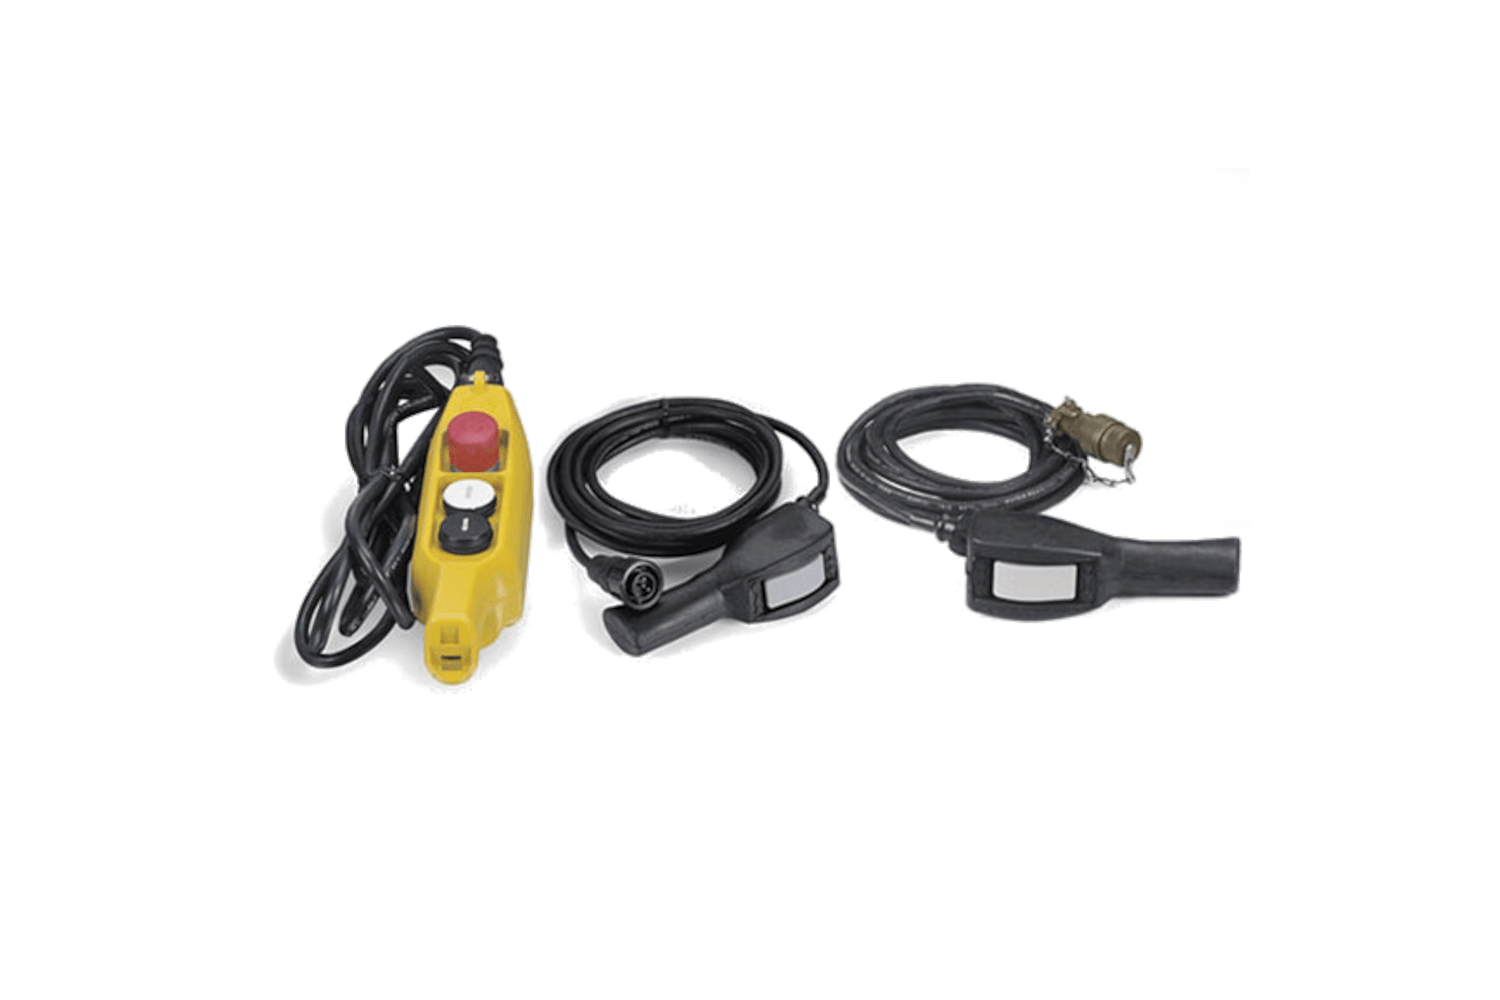 warn industrial rigging accessories winch remote controls